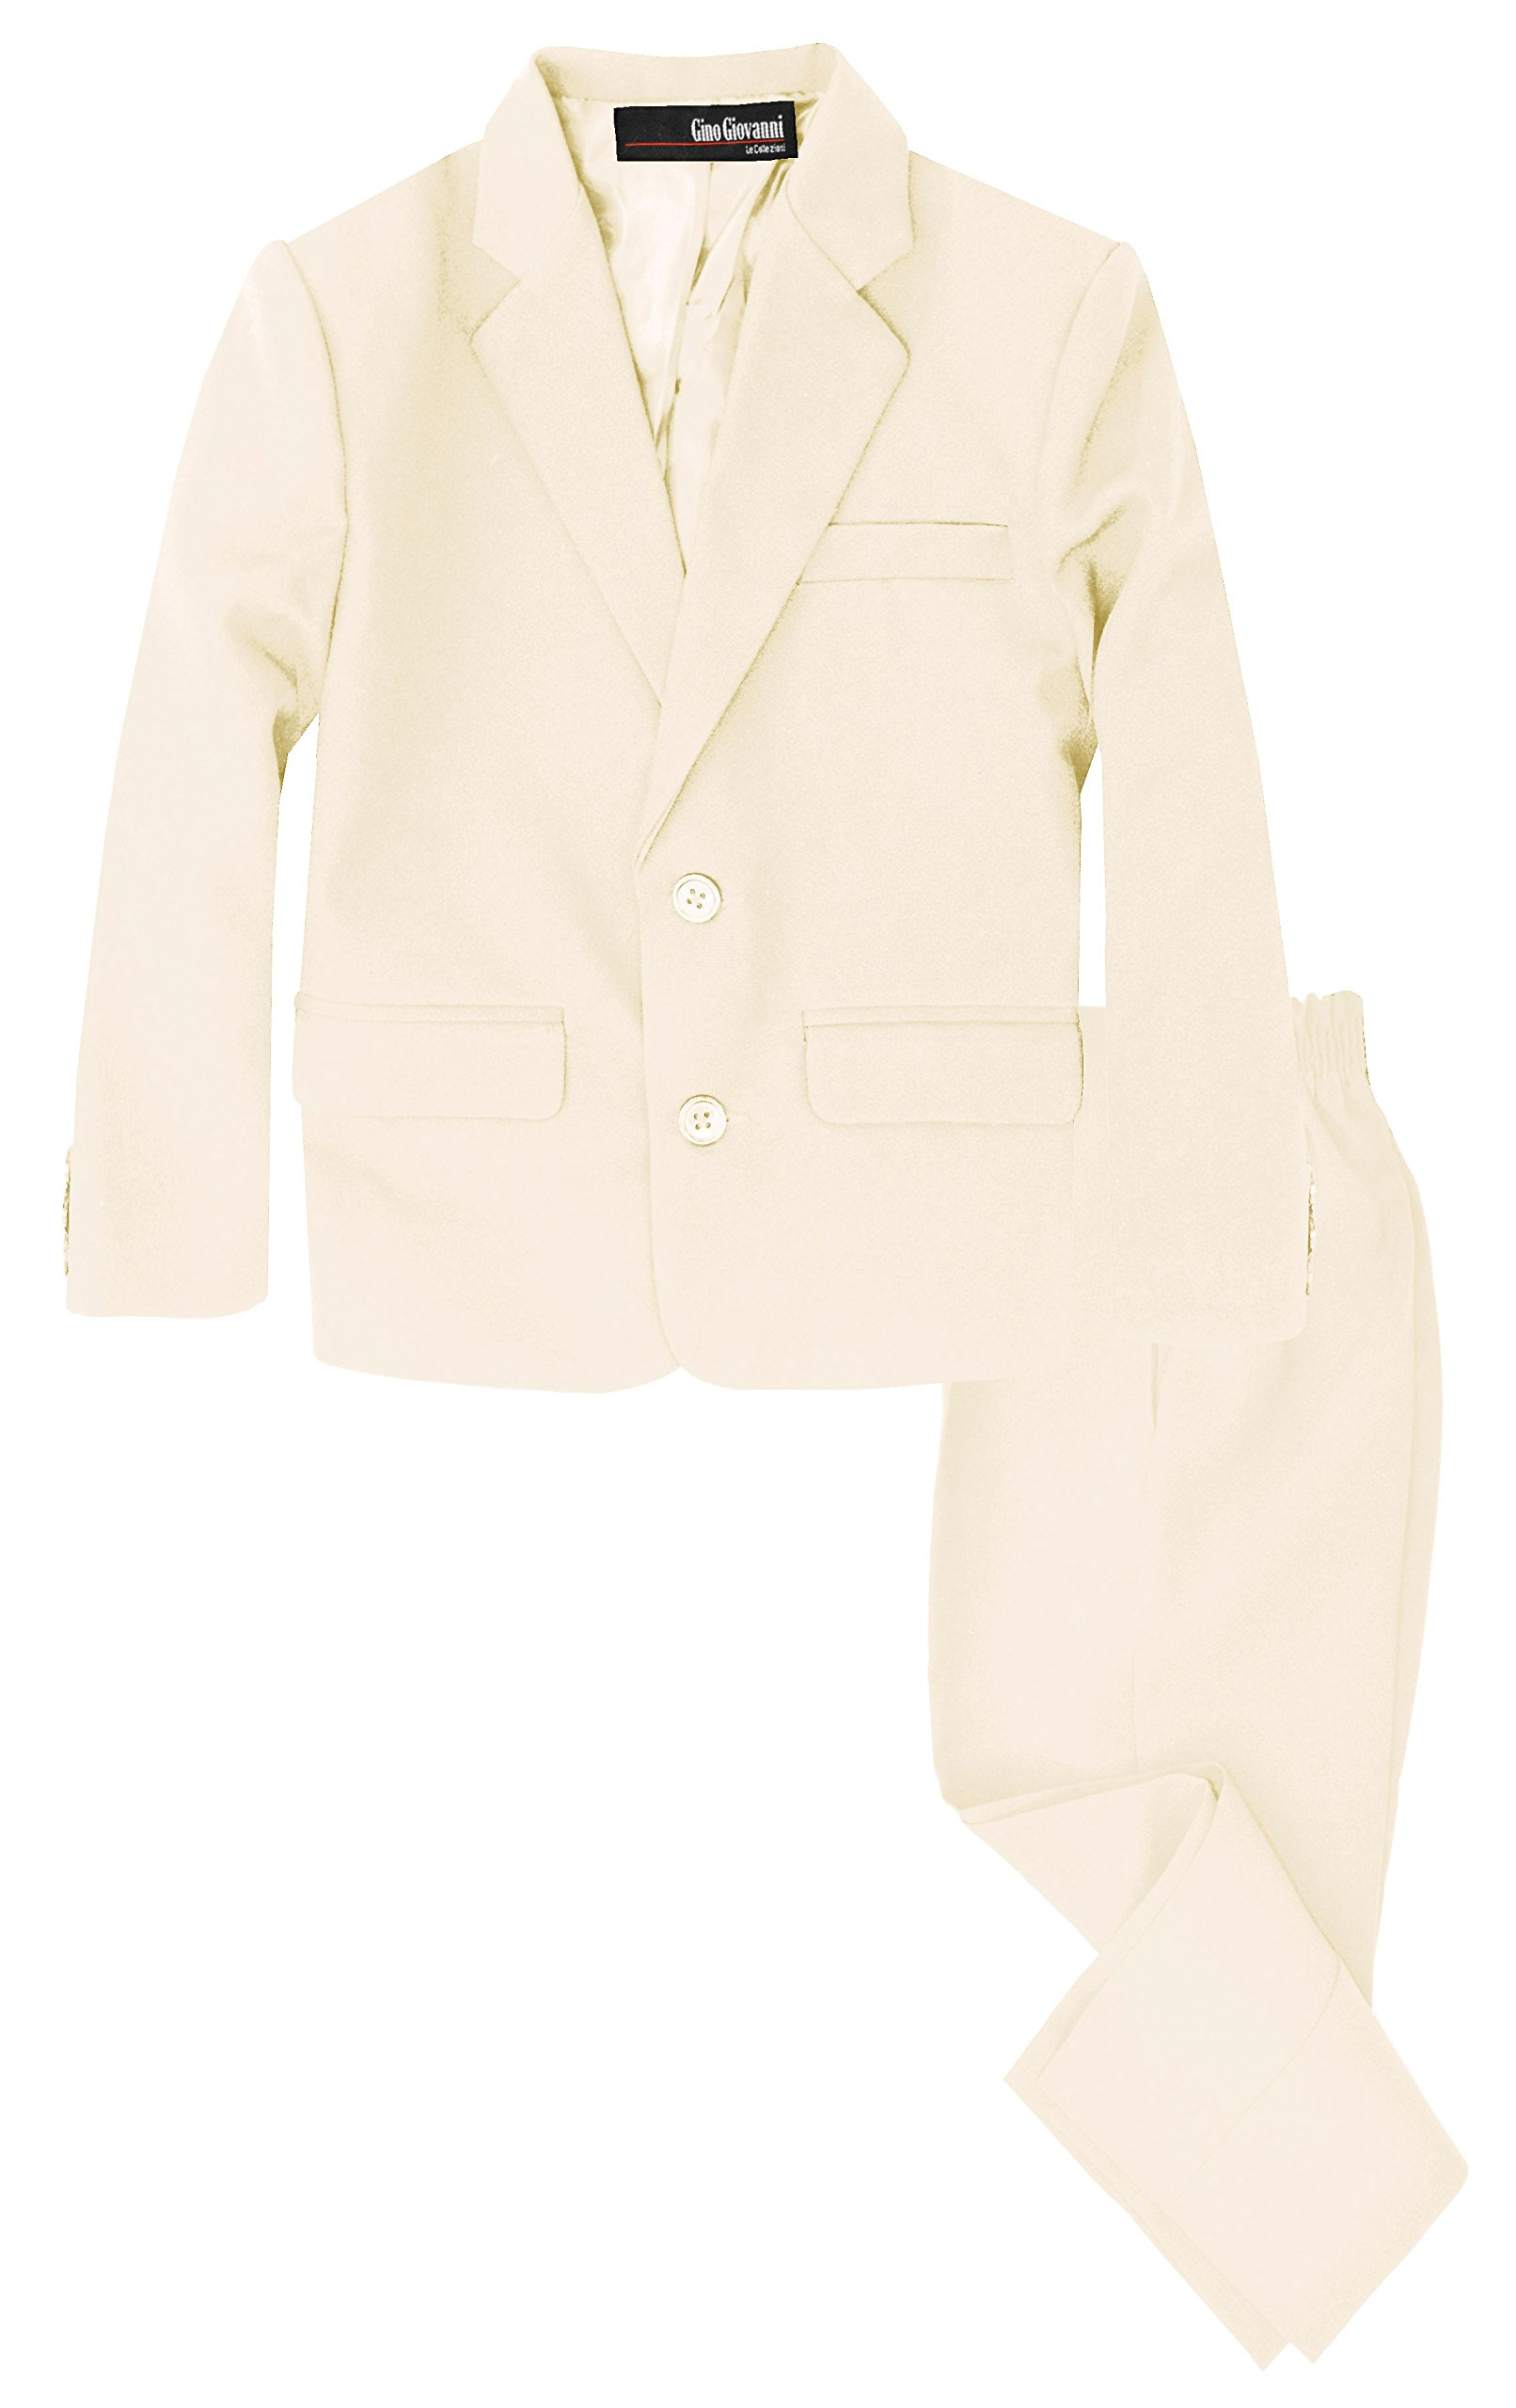 G218 Boys 2 Piece Suit Set Toddler to Teen (14, Ivory)